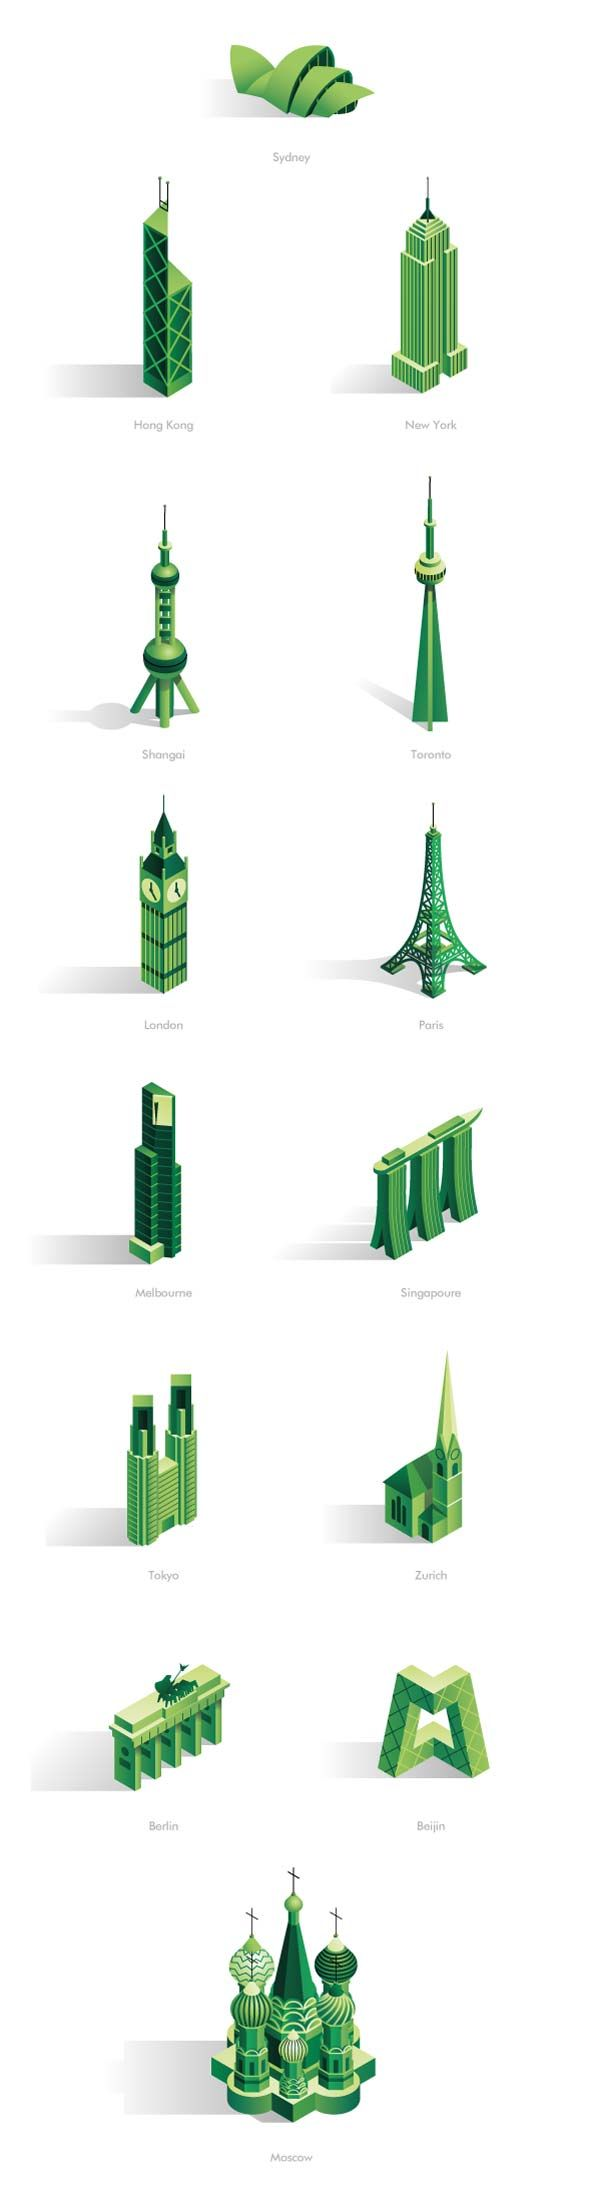 Animated Infographics by Veni Vídeo Vici for CBRE